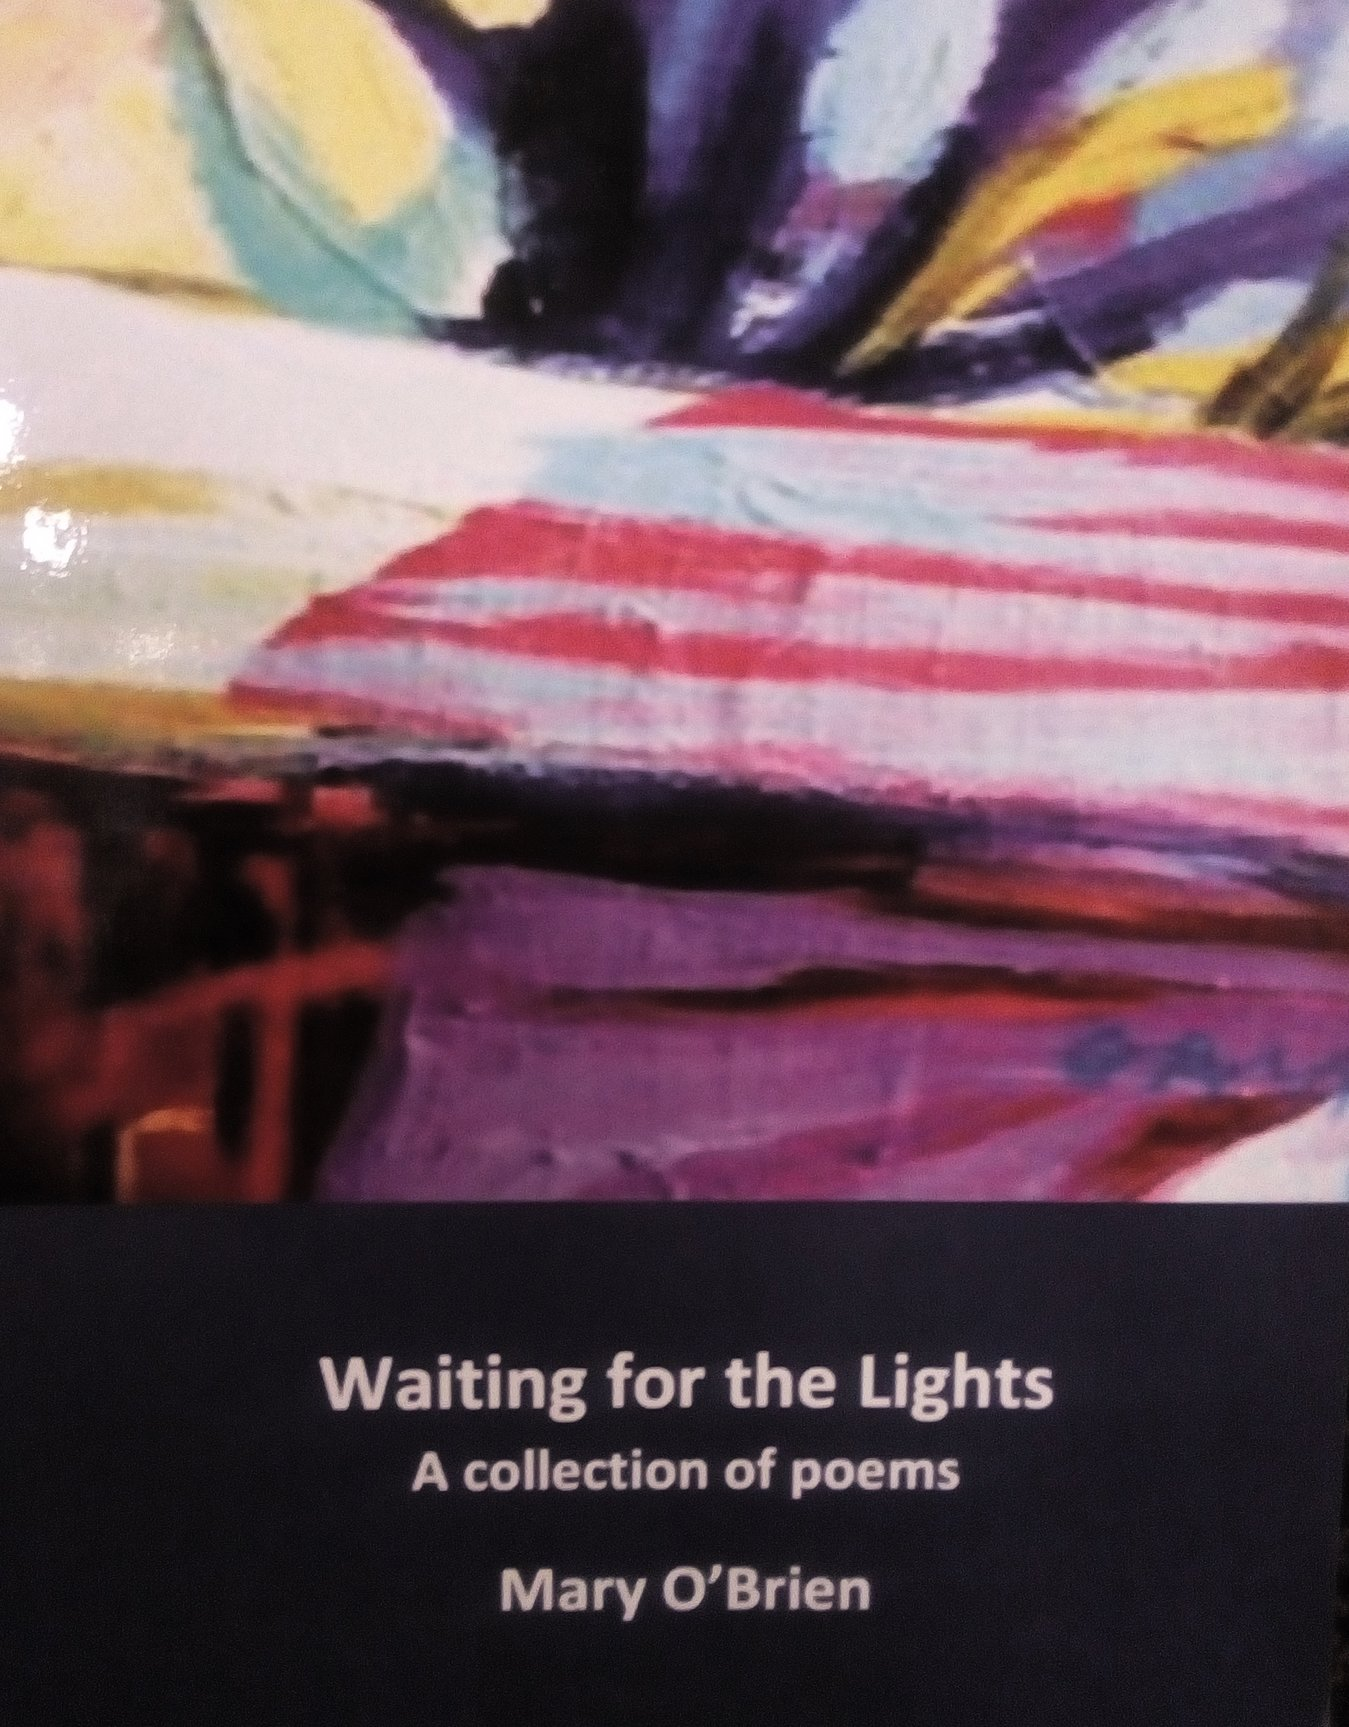 Waiting For The Lights by Mary O'Brien